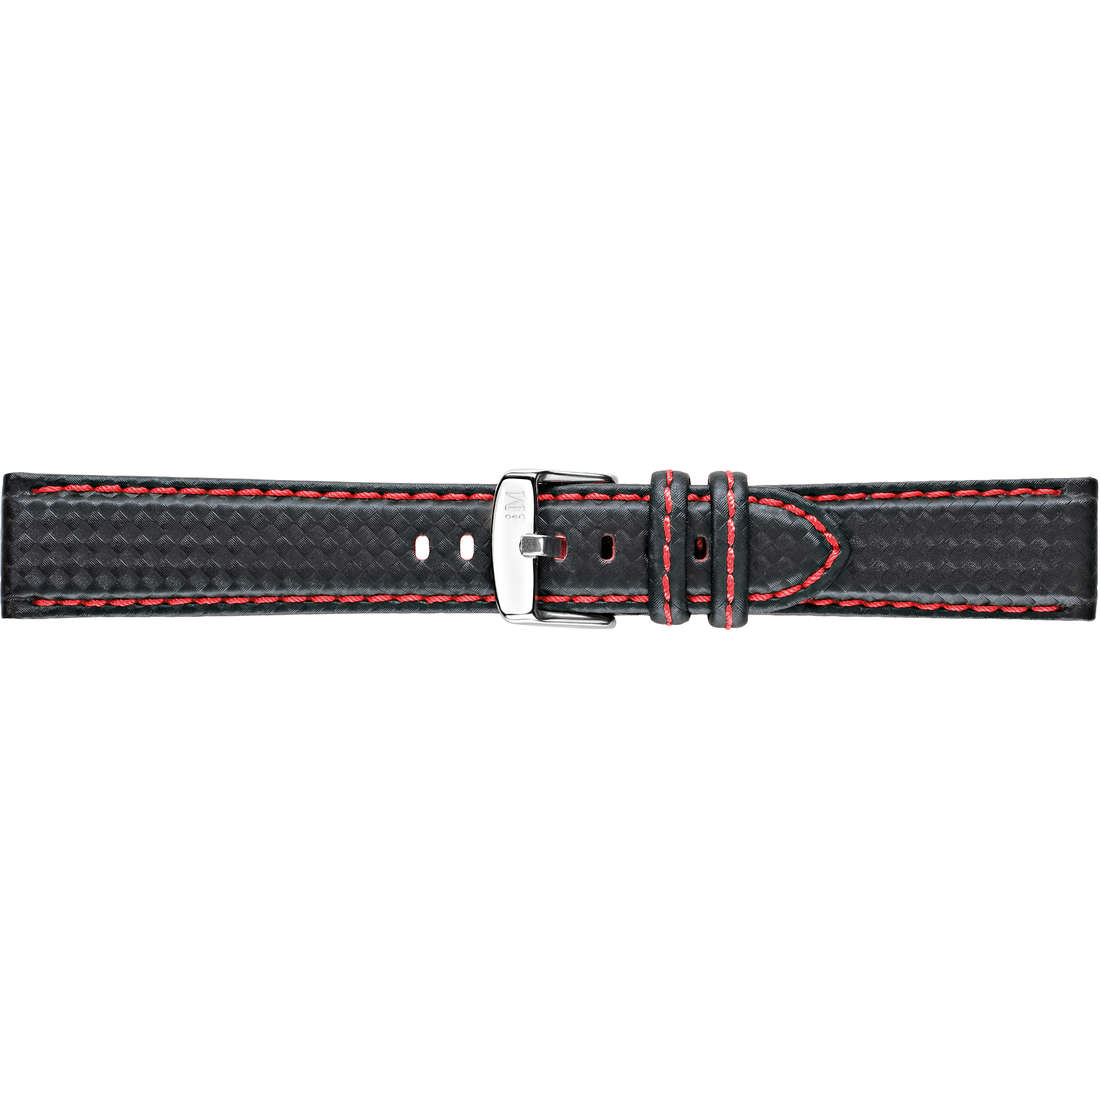 watch watch bands watch straps man Morellato Linea Sport A01U3586977883CR20